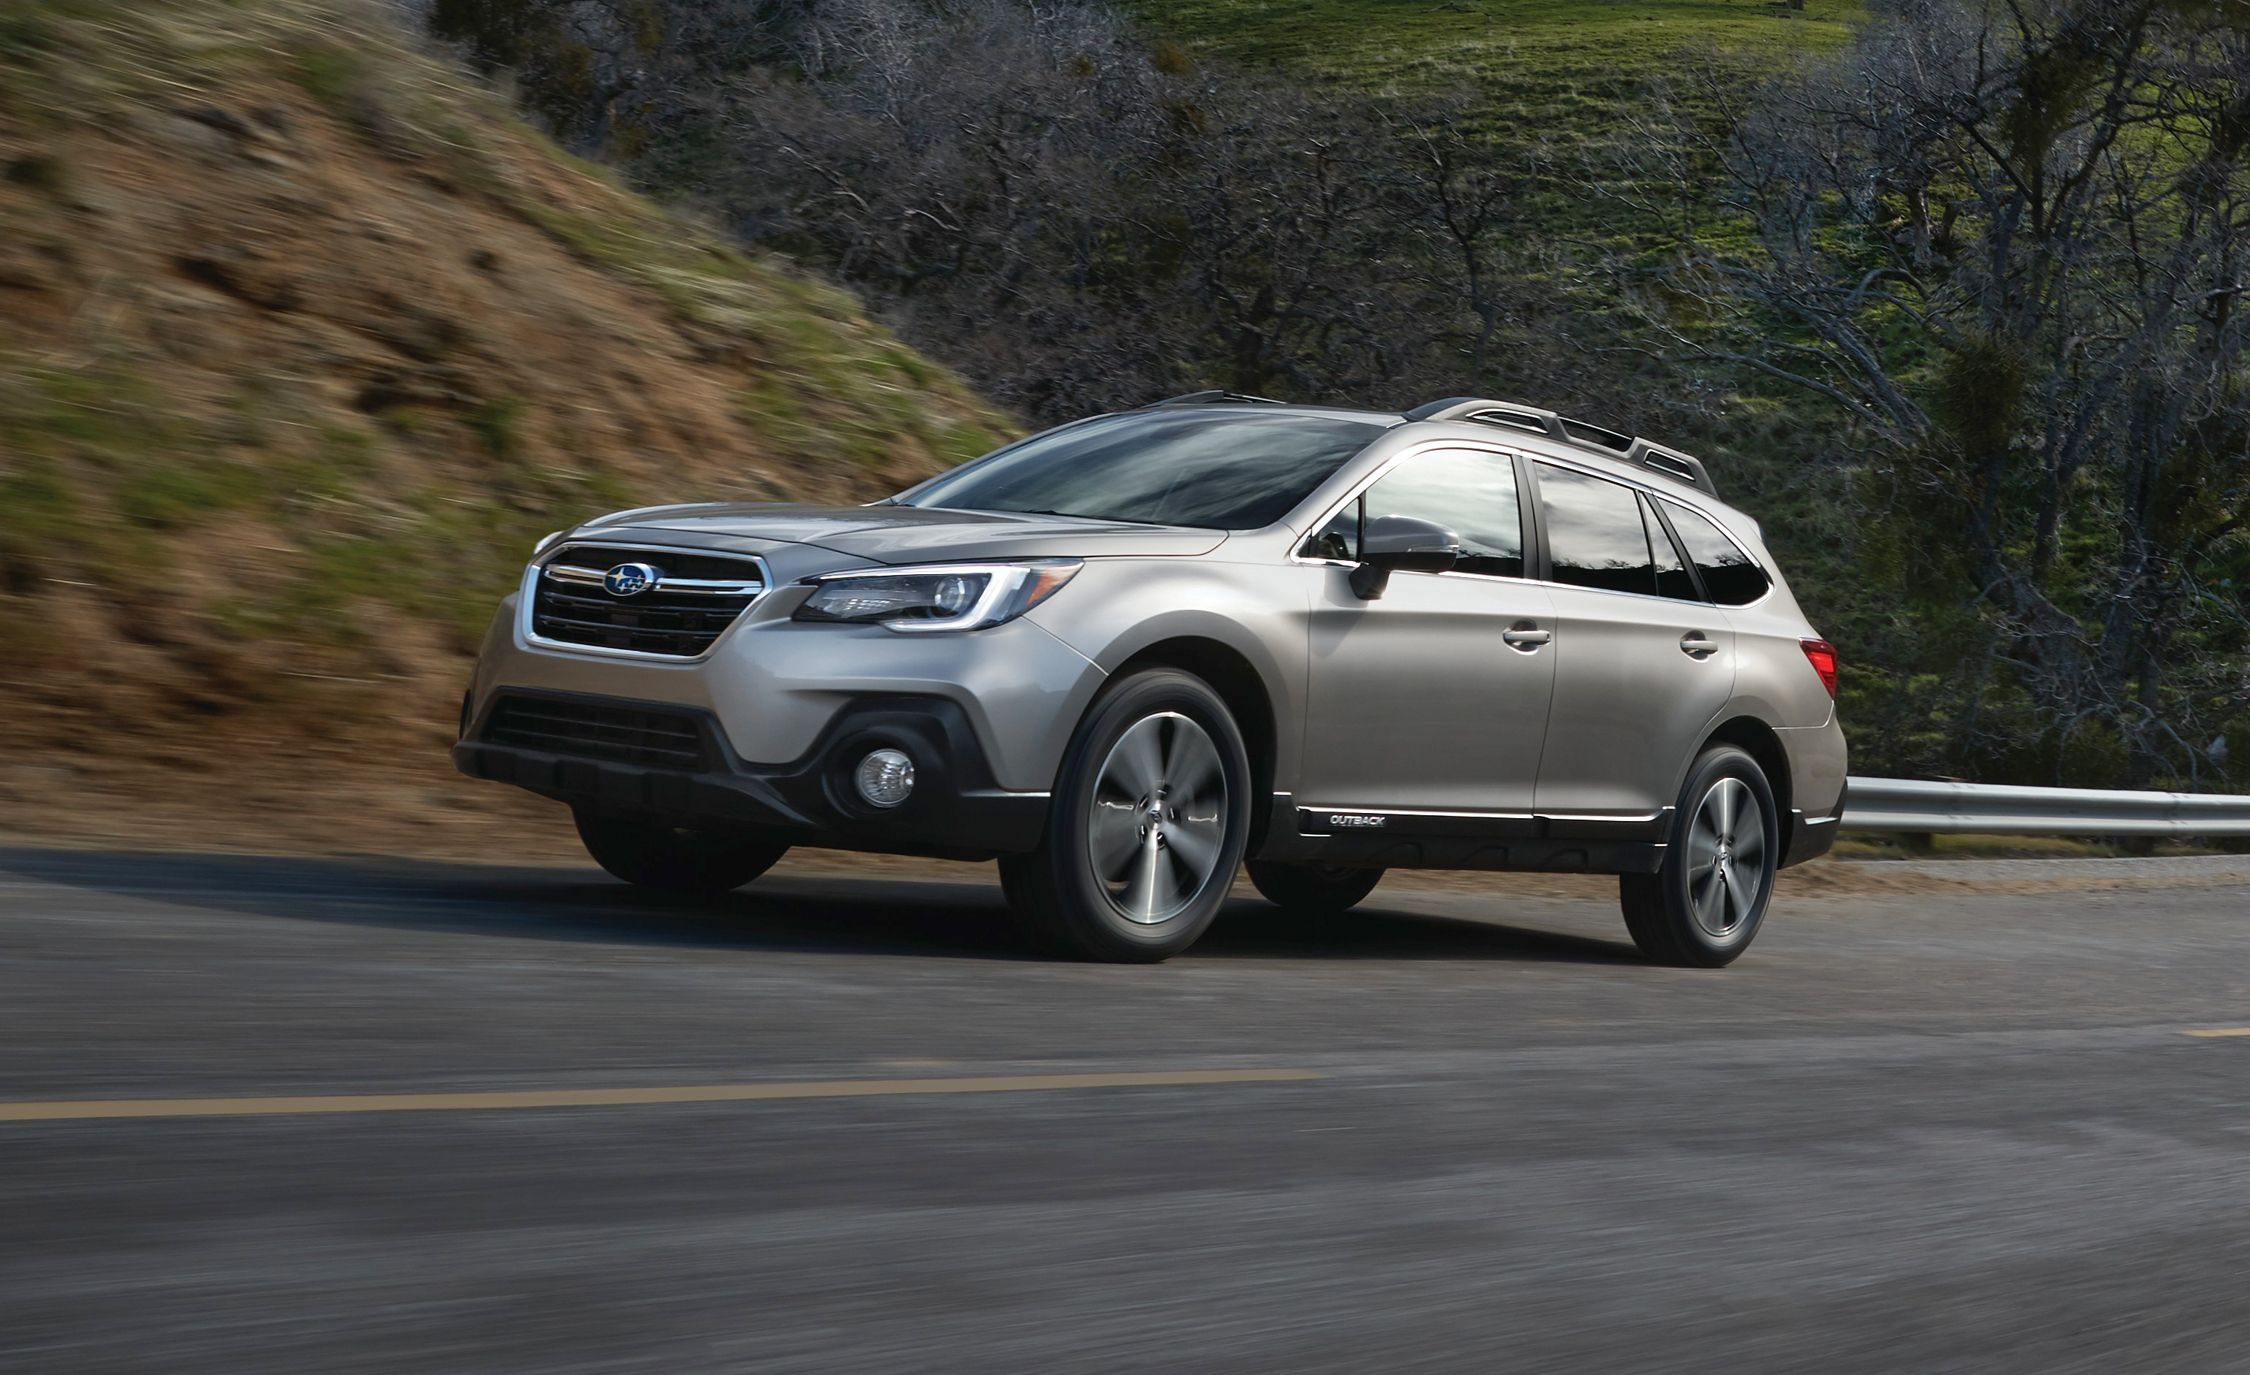 2018 Subaru Outback: Little Things Mean a Lot